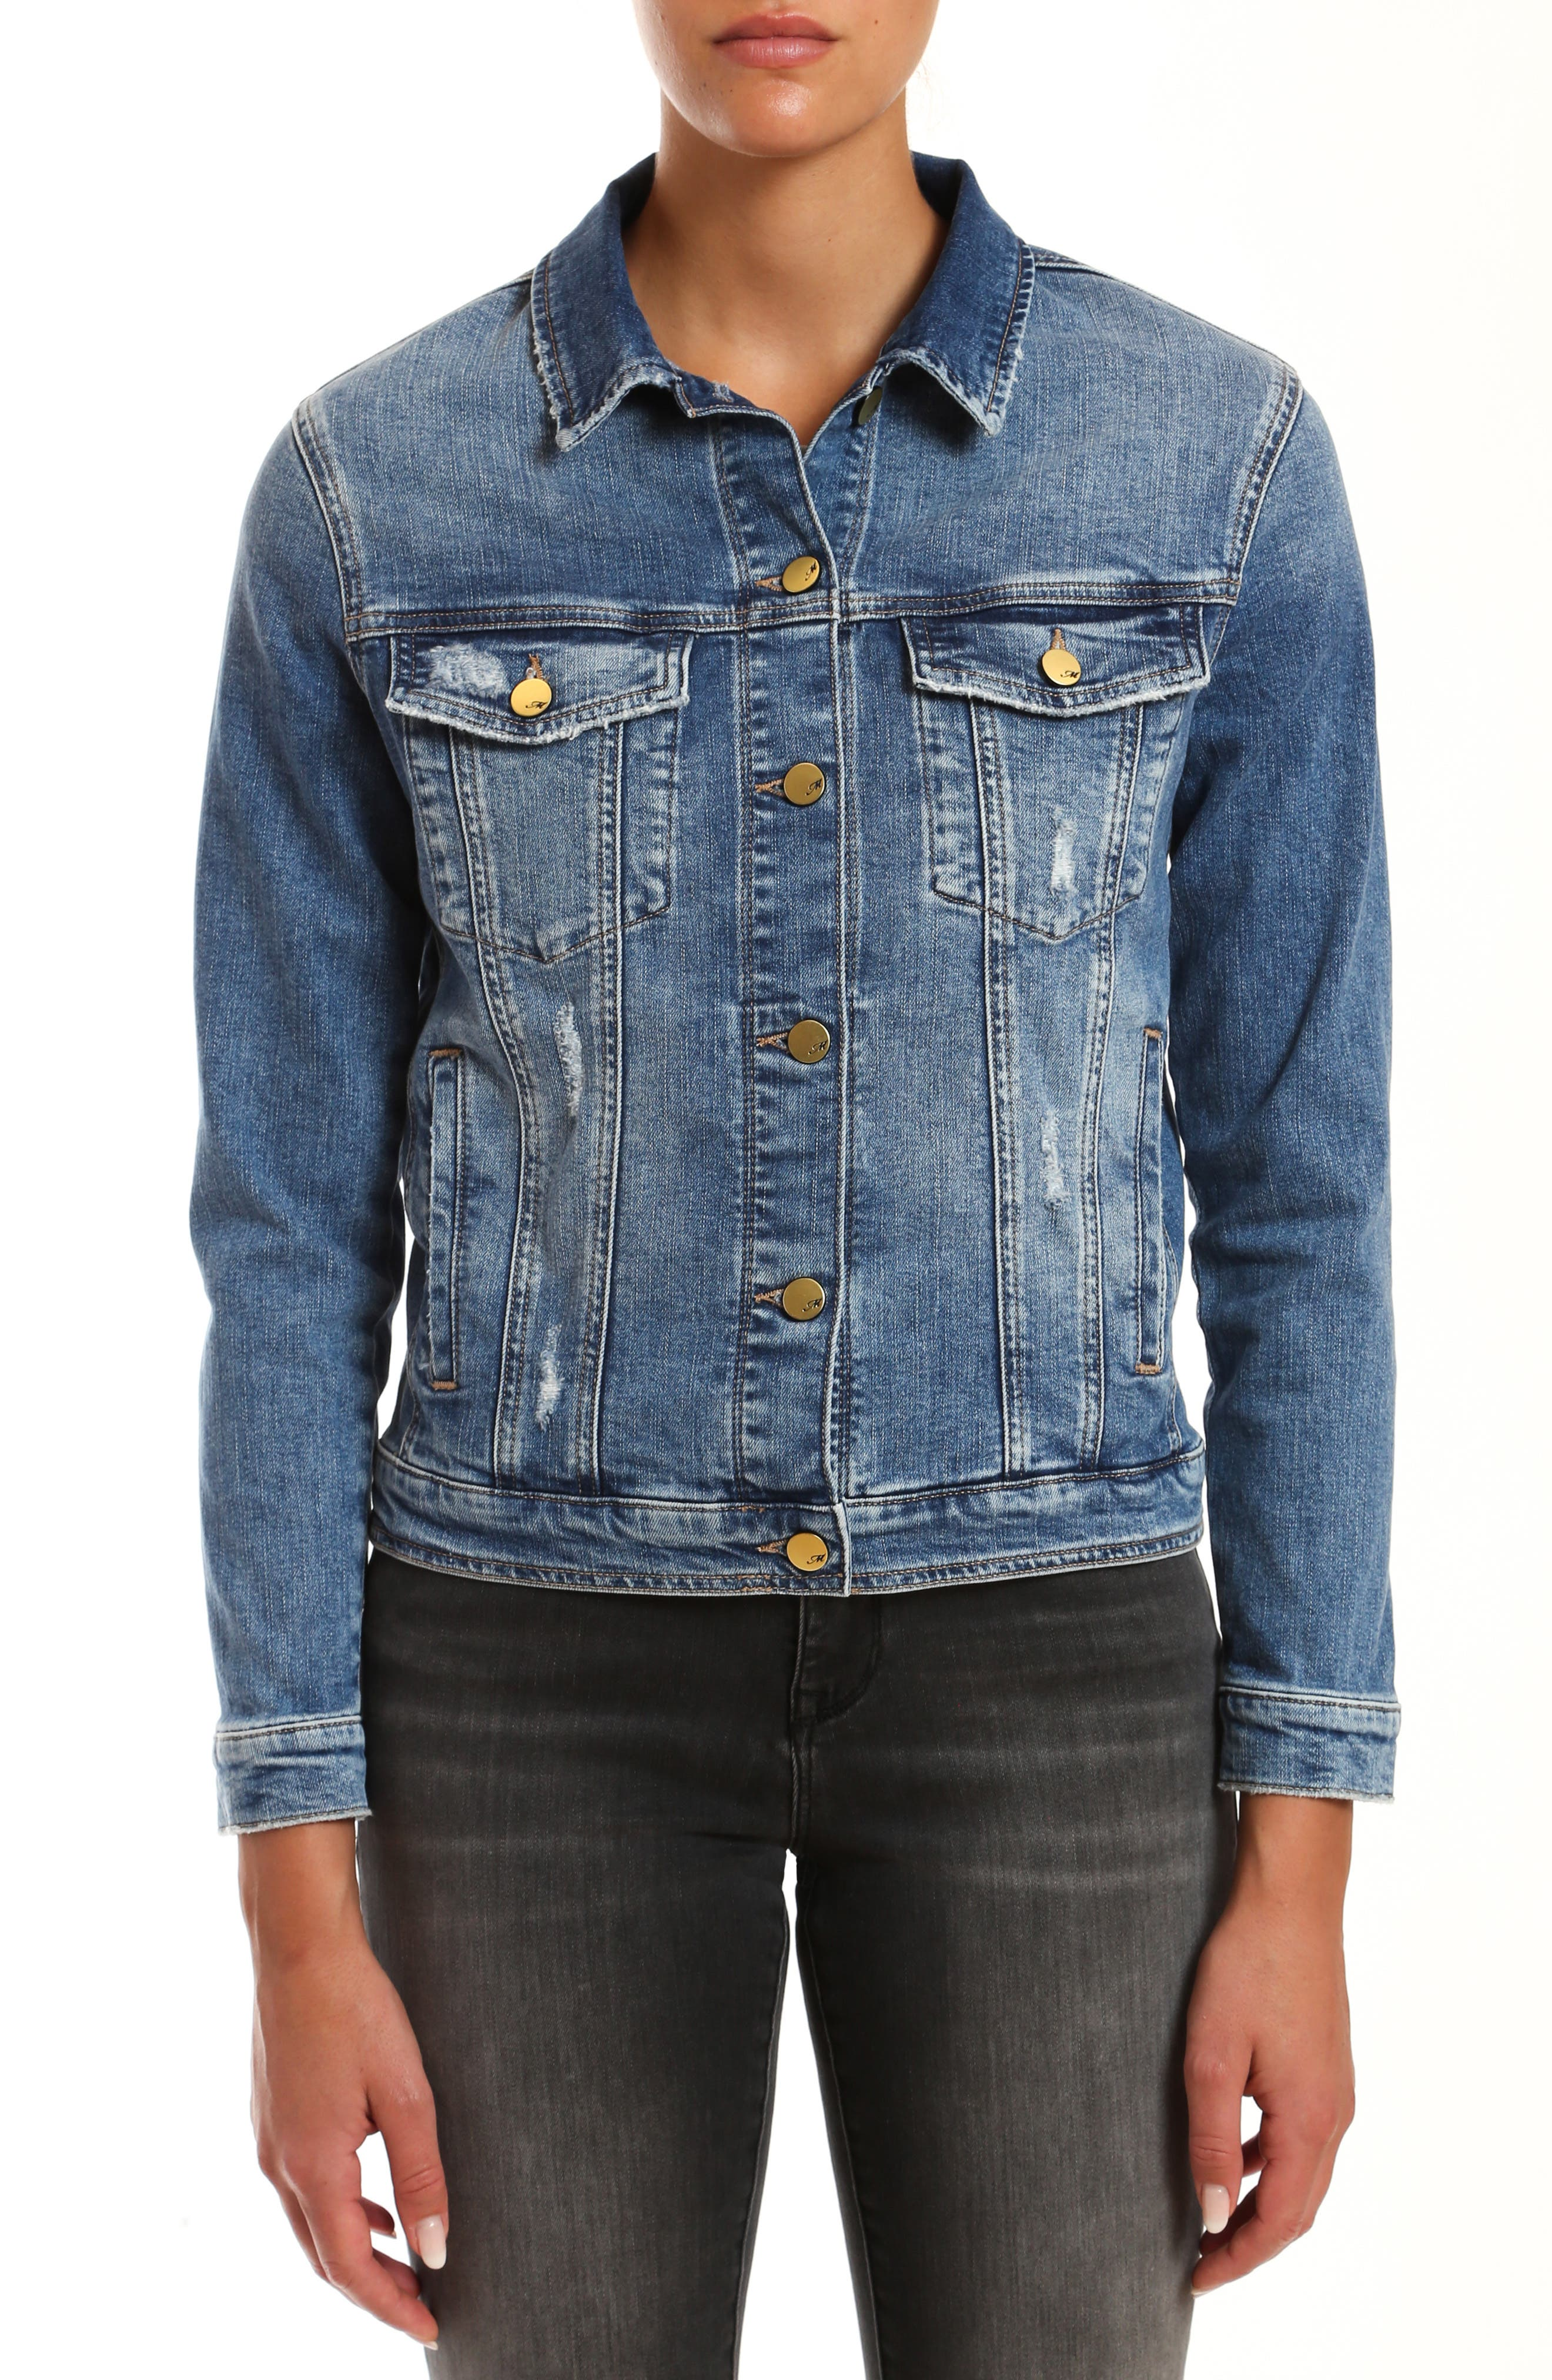 Cut from softly aged stretch denim, an everyday-essential jacket gets trend-right edge from strategic distressing. Style Name: Mavi Jeans Katy Distressed Denim Jacket. Style Number: 5999166. Available in stores.